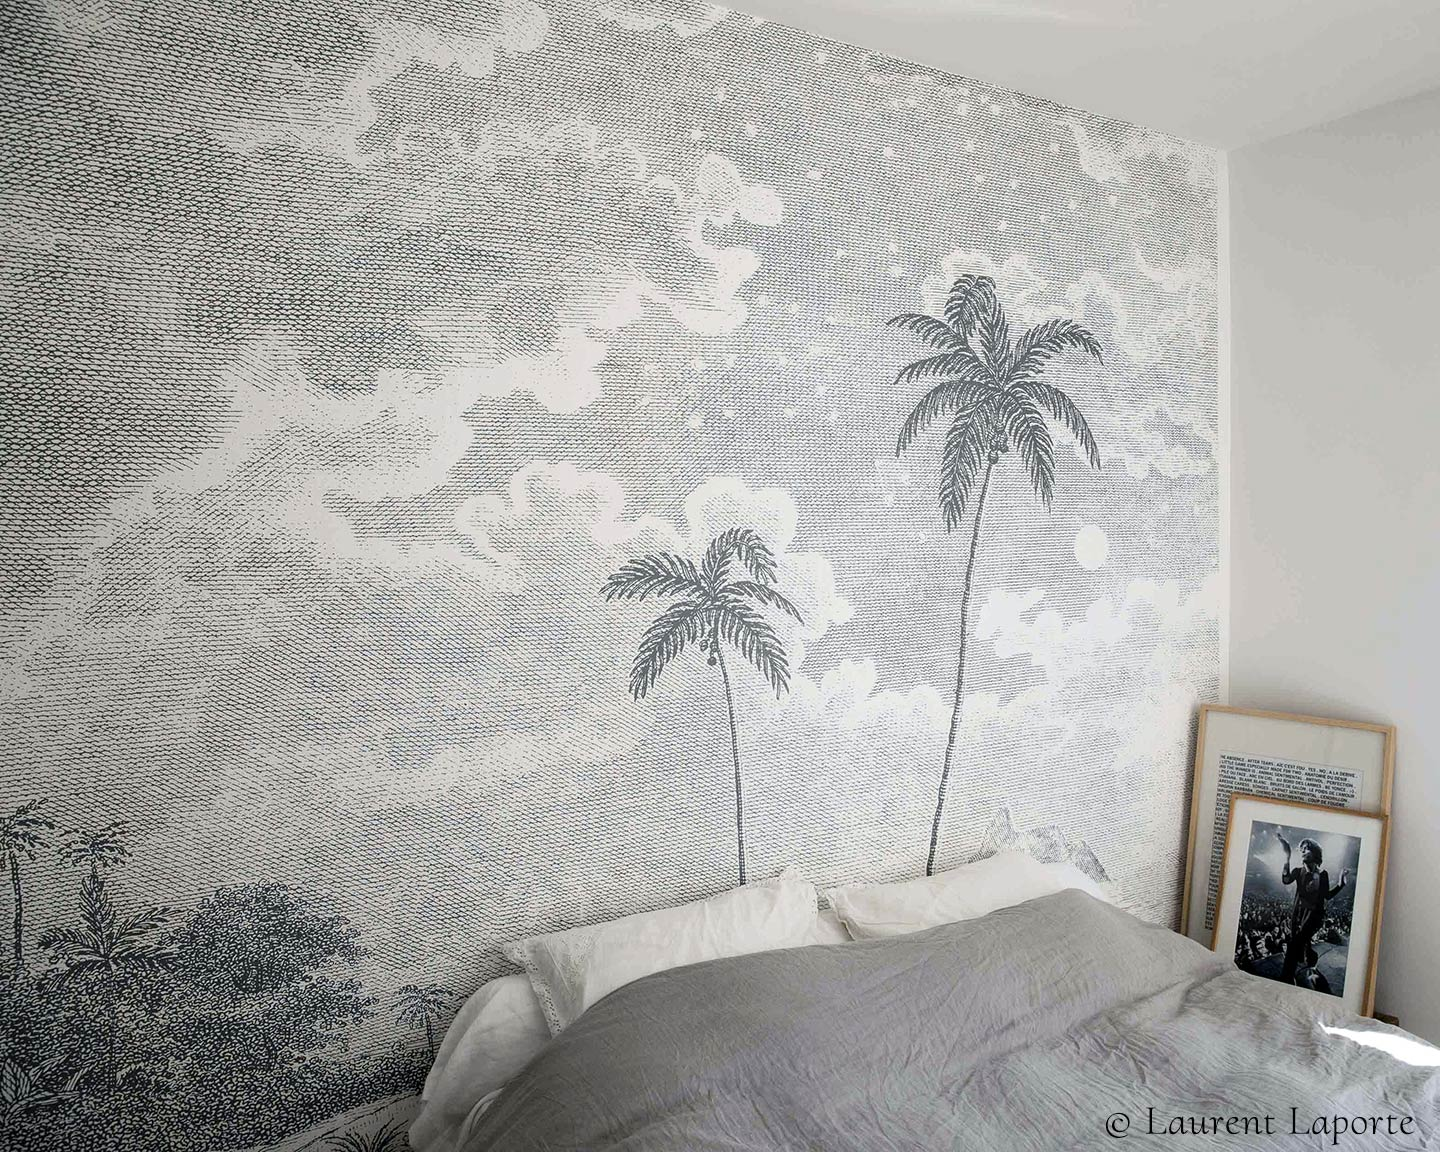 Tropical wall mural with palm trees PALMAR GREY in a bedroom © Laurent Laporte